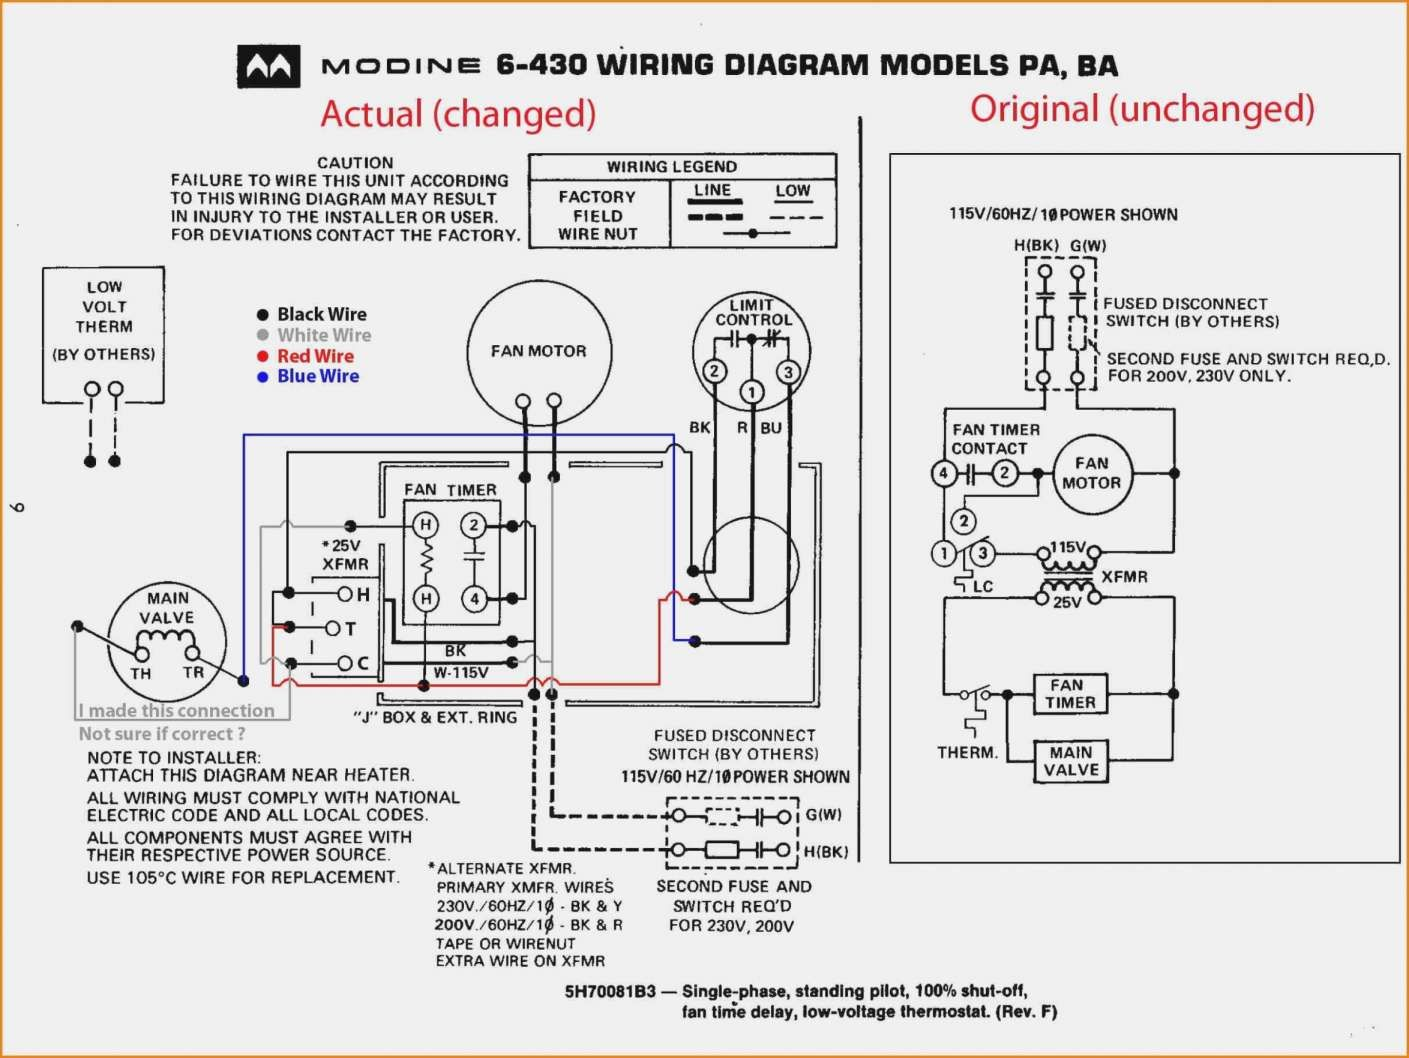 10 General Electric Motor 5kc Wiring Diagram Wiring Diagram In